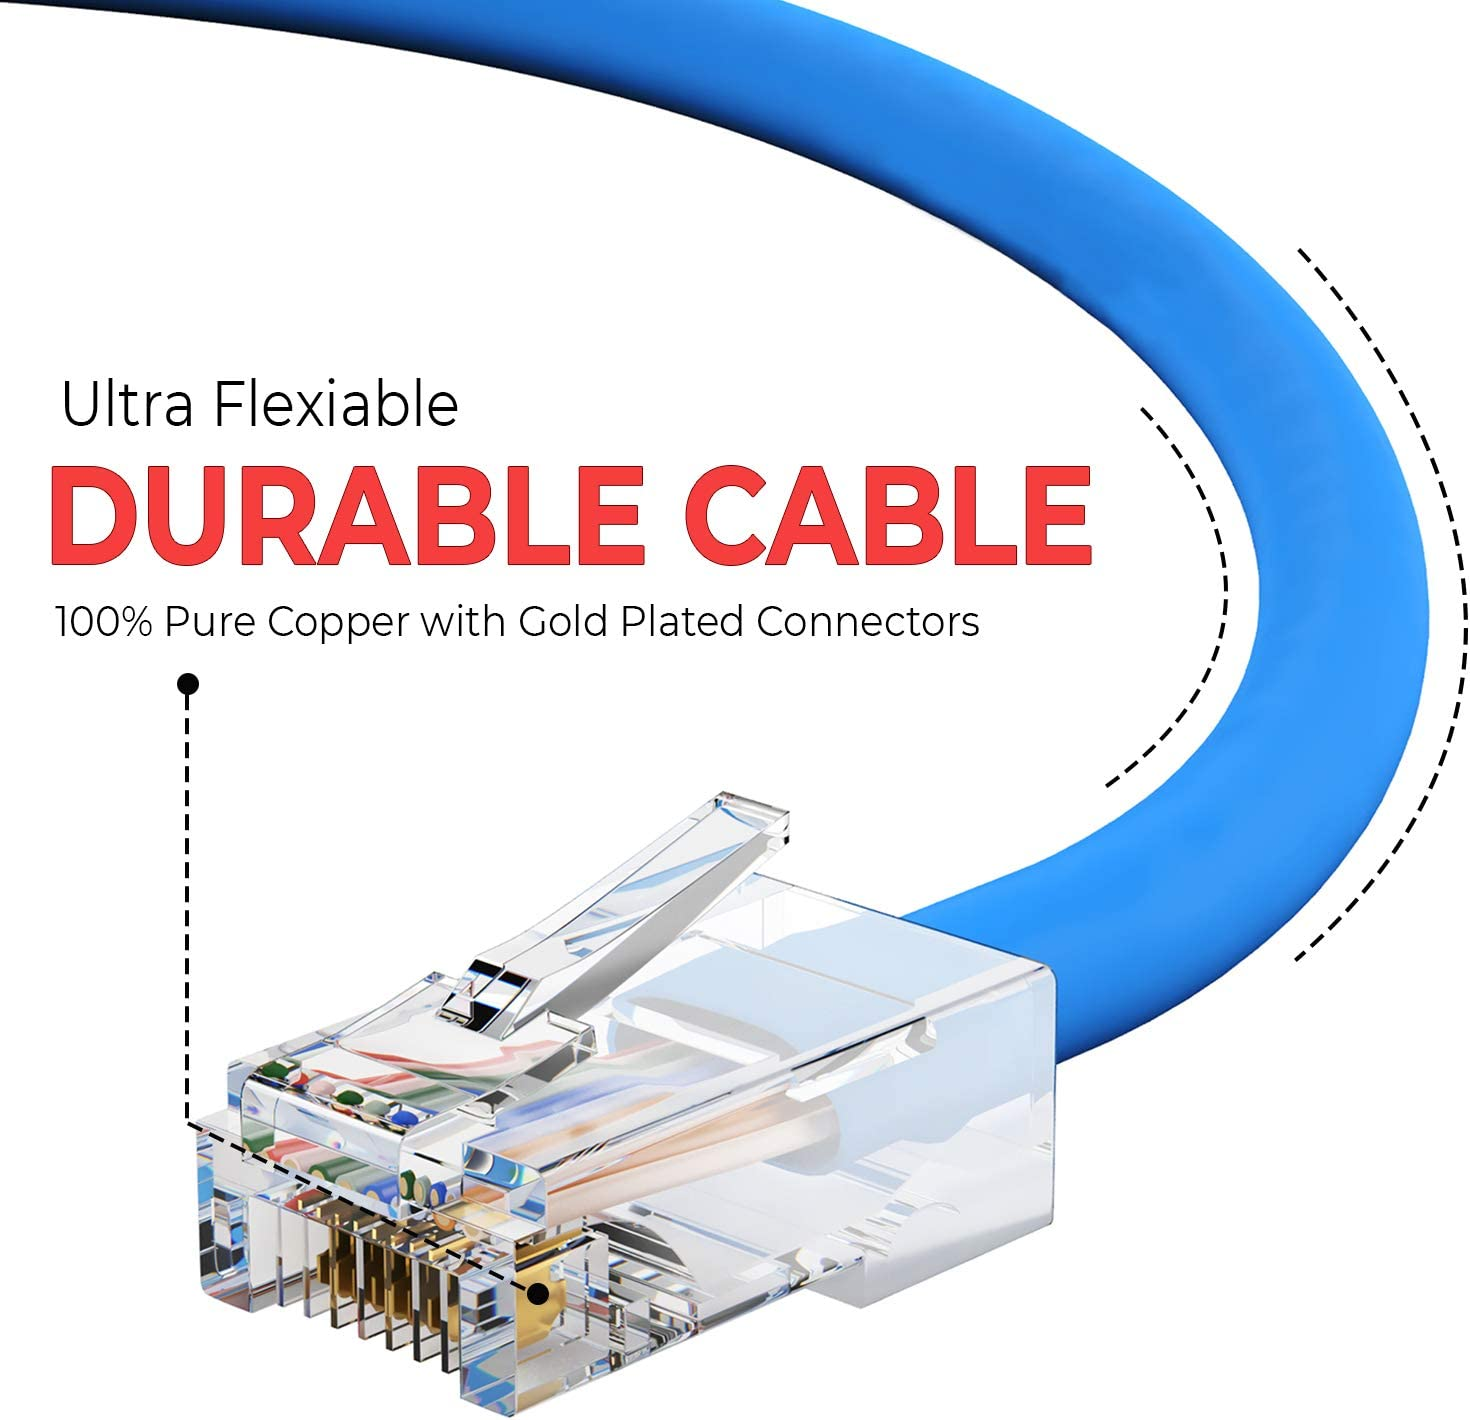 1Gigabit//Sec High Speed LAN Internet//Patch Cable GOWOS Cat5e Shielded Ethernet Cable 26AWG Network Cable with Gold Plated RJ45 Snagless//Molded//Booted Connector 350MHz 6 Feet - White